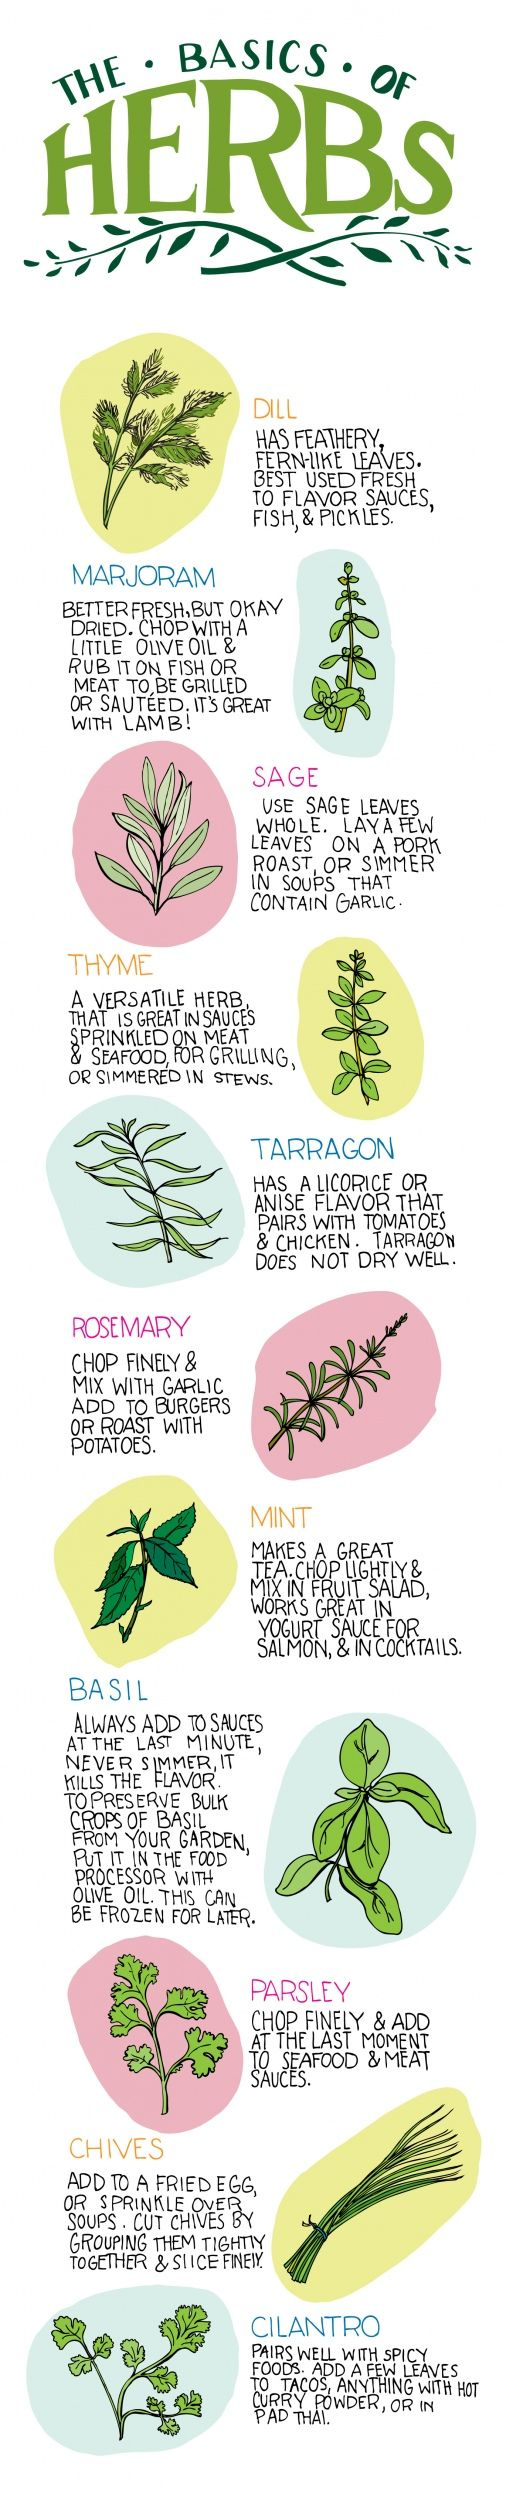 The basics of herbs.